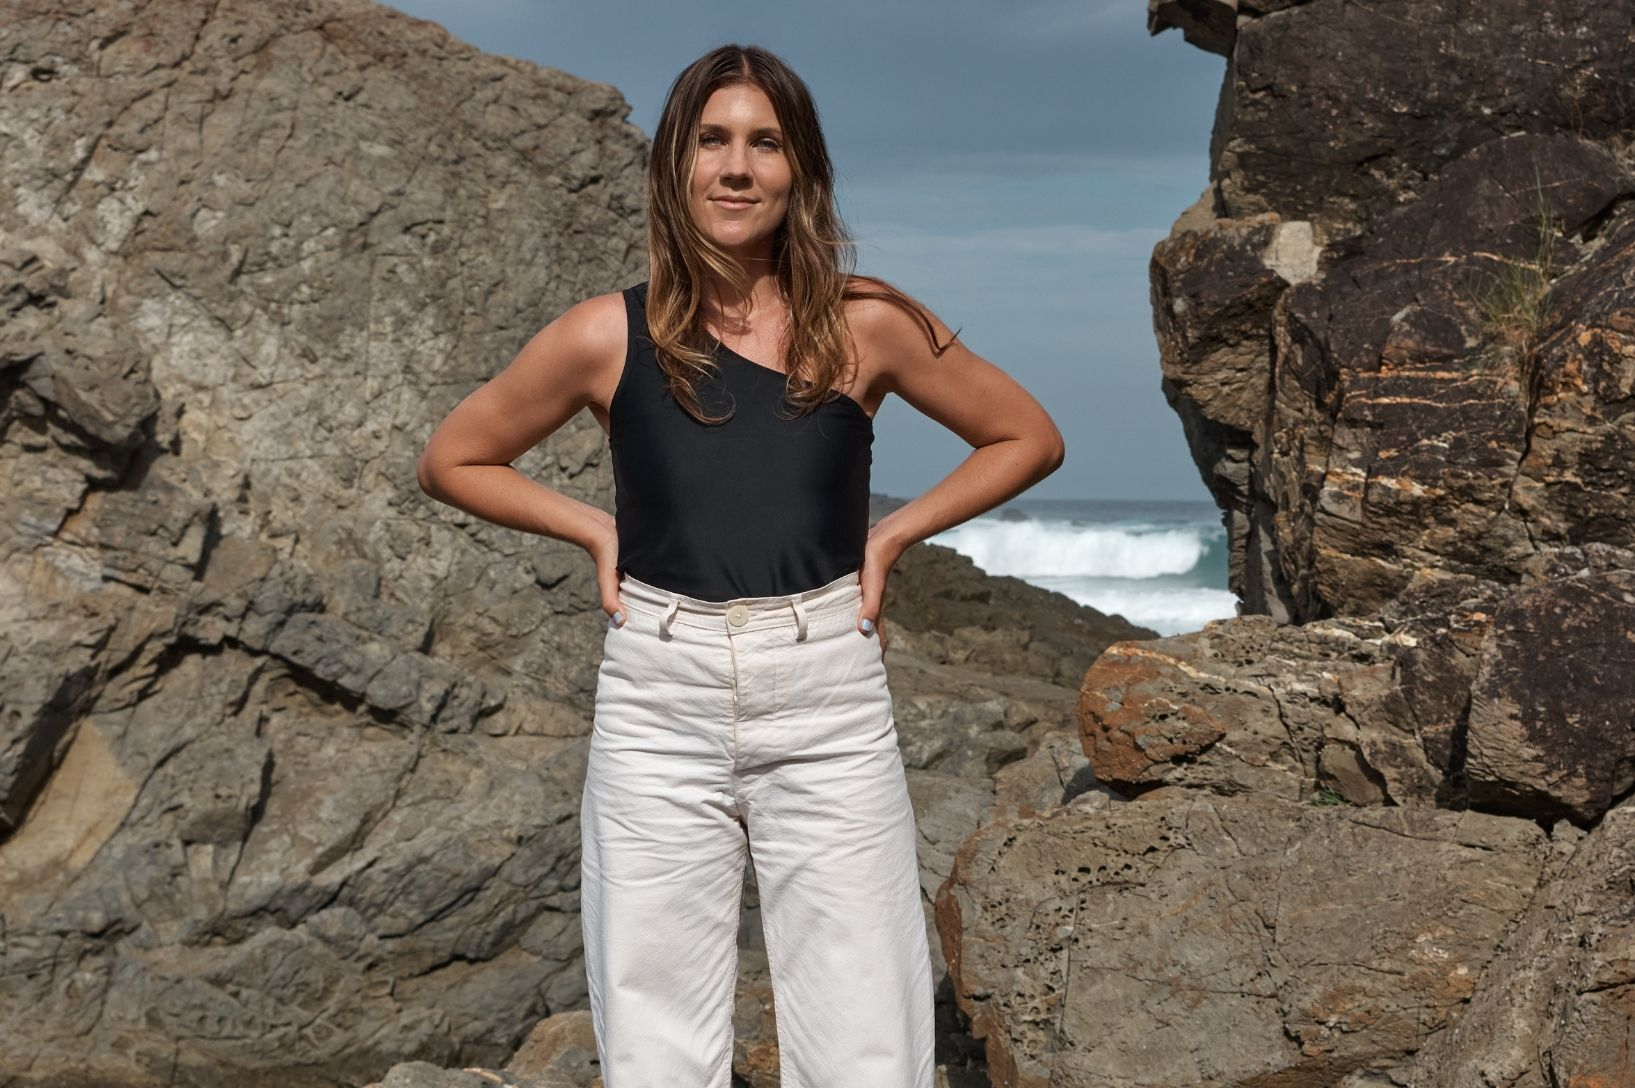 Diving into what makes sustainable swimwear company Hakea tick with its founder, Casey Eastwell.